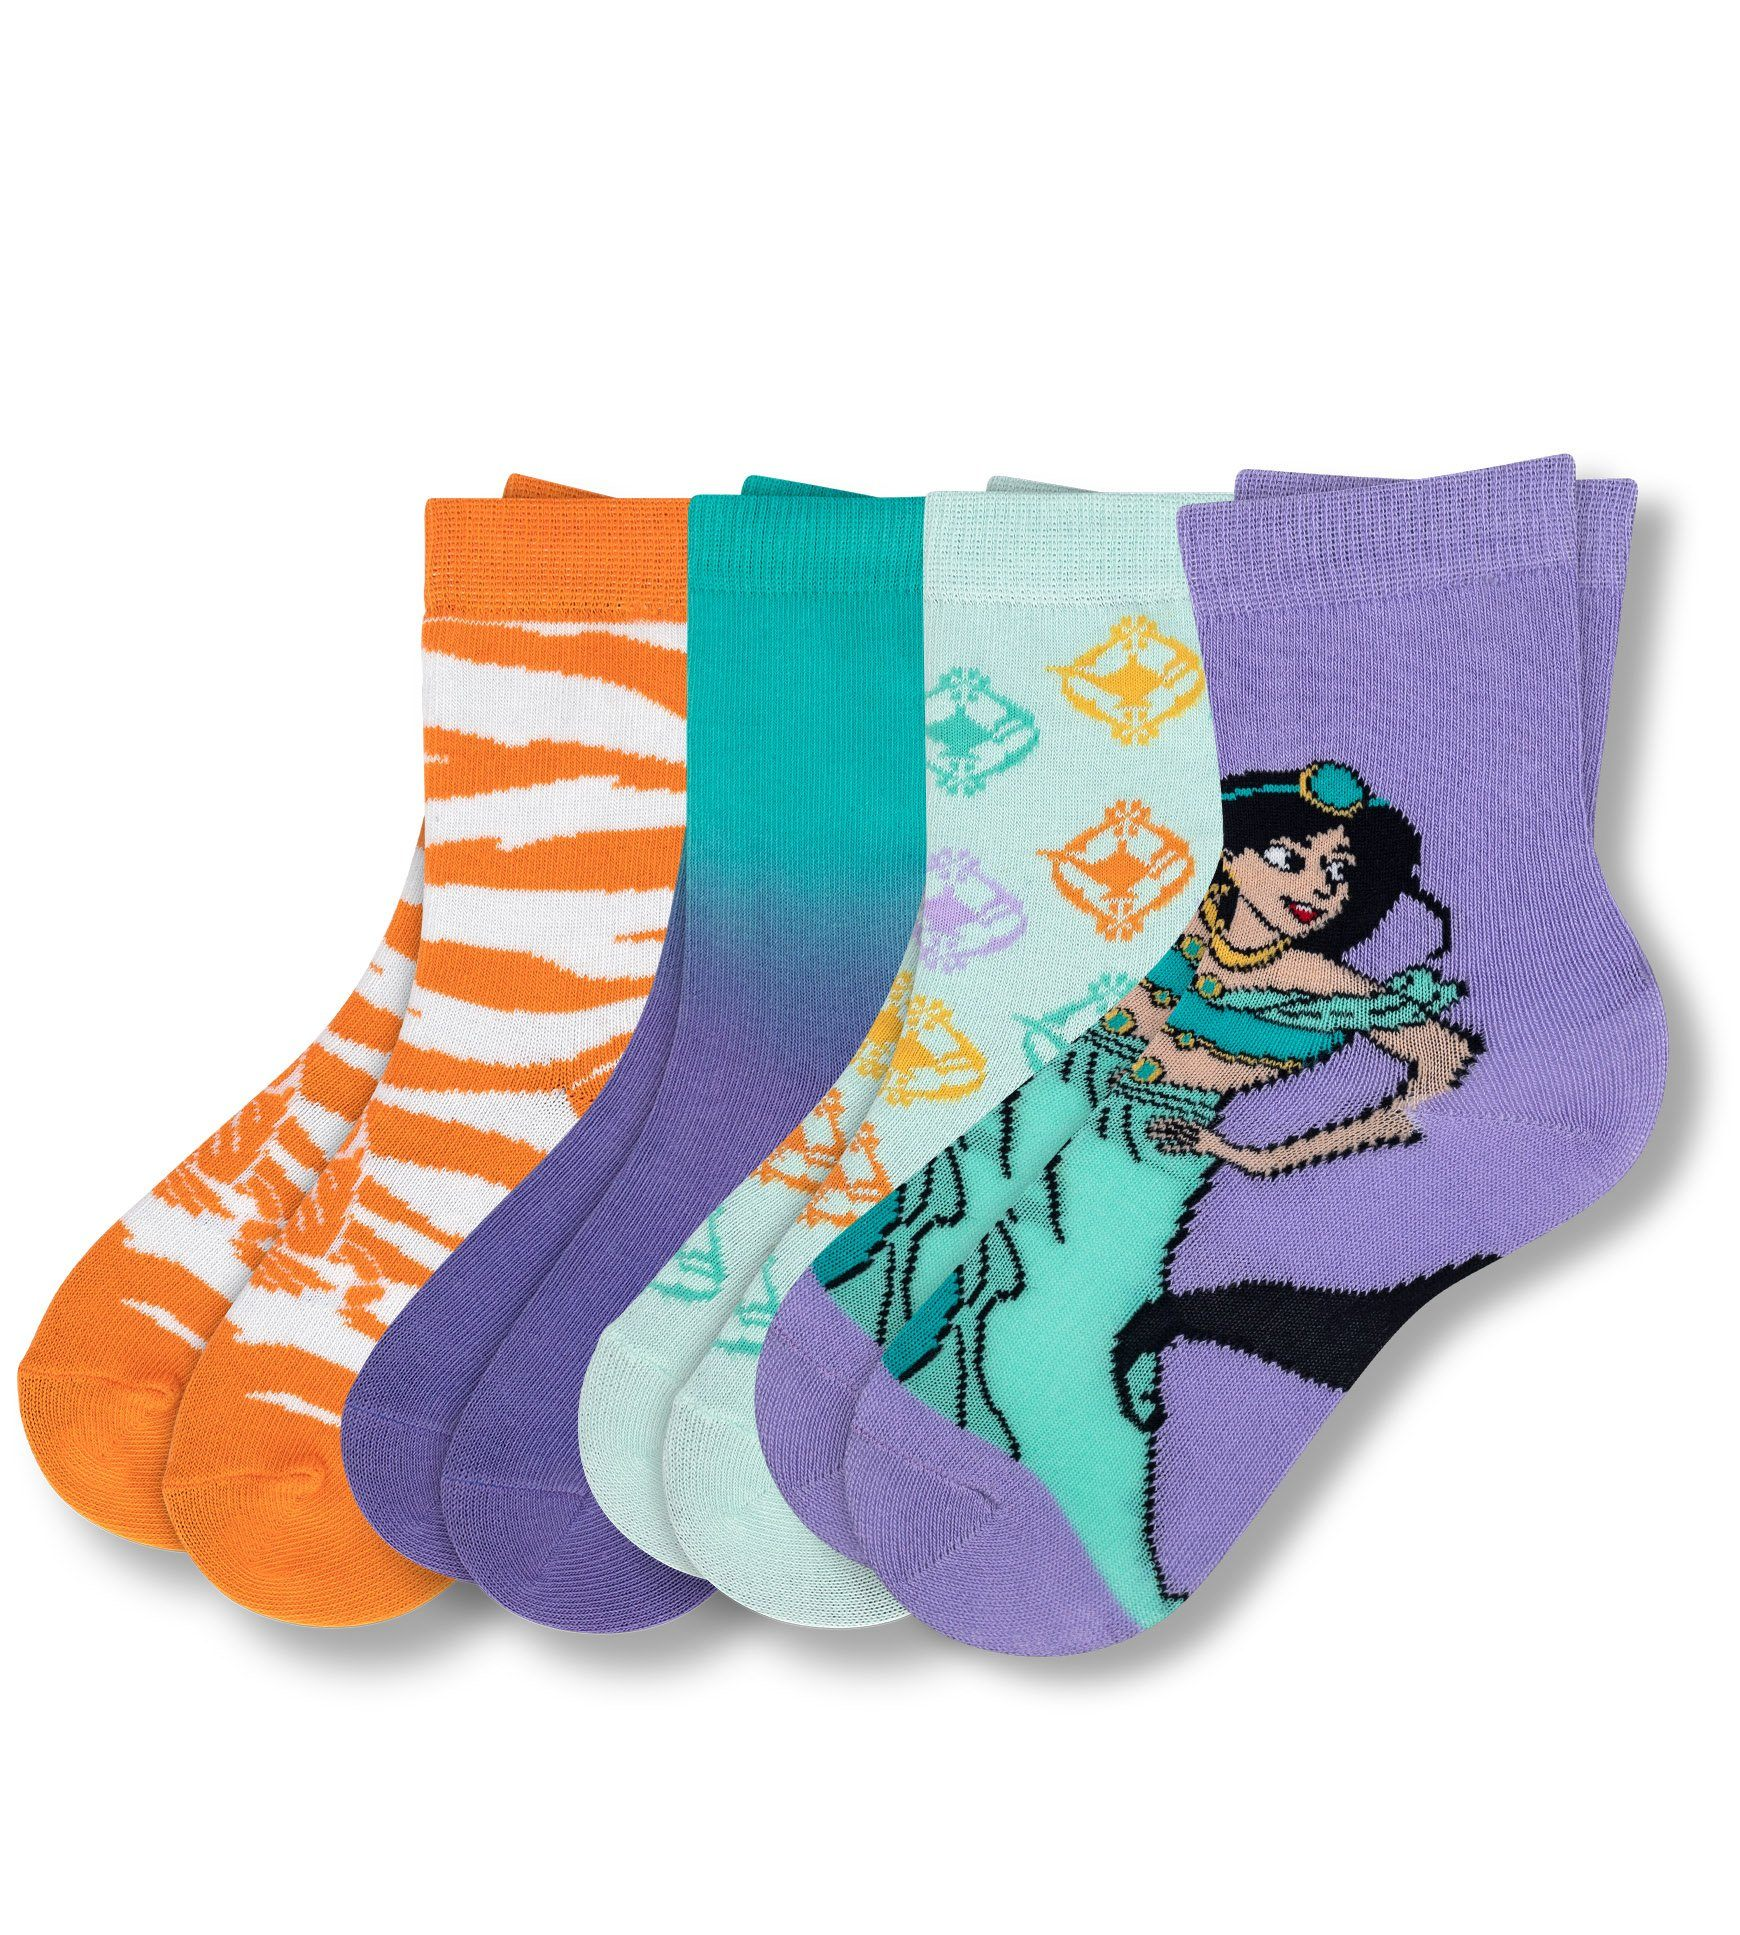 Aladdin Whole New World Kid's 4 Pack Crew Sock